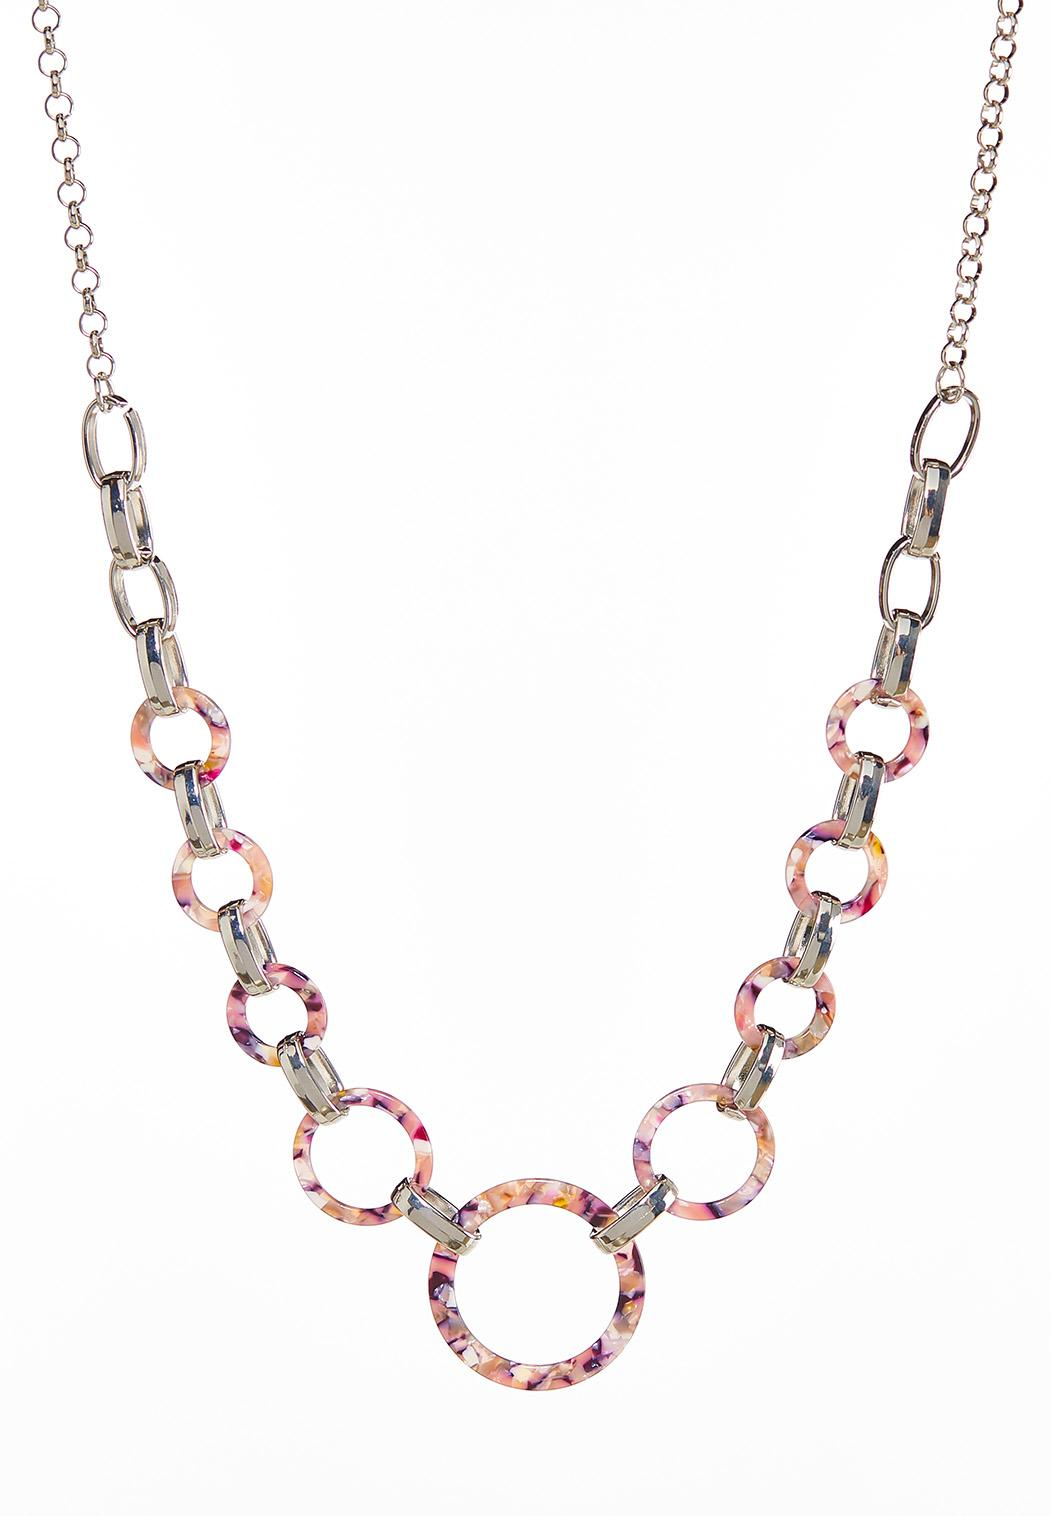 Lucite Link Chain Necklace